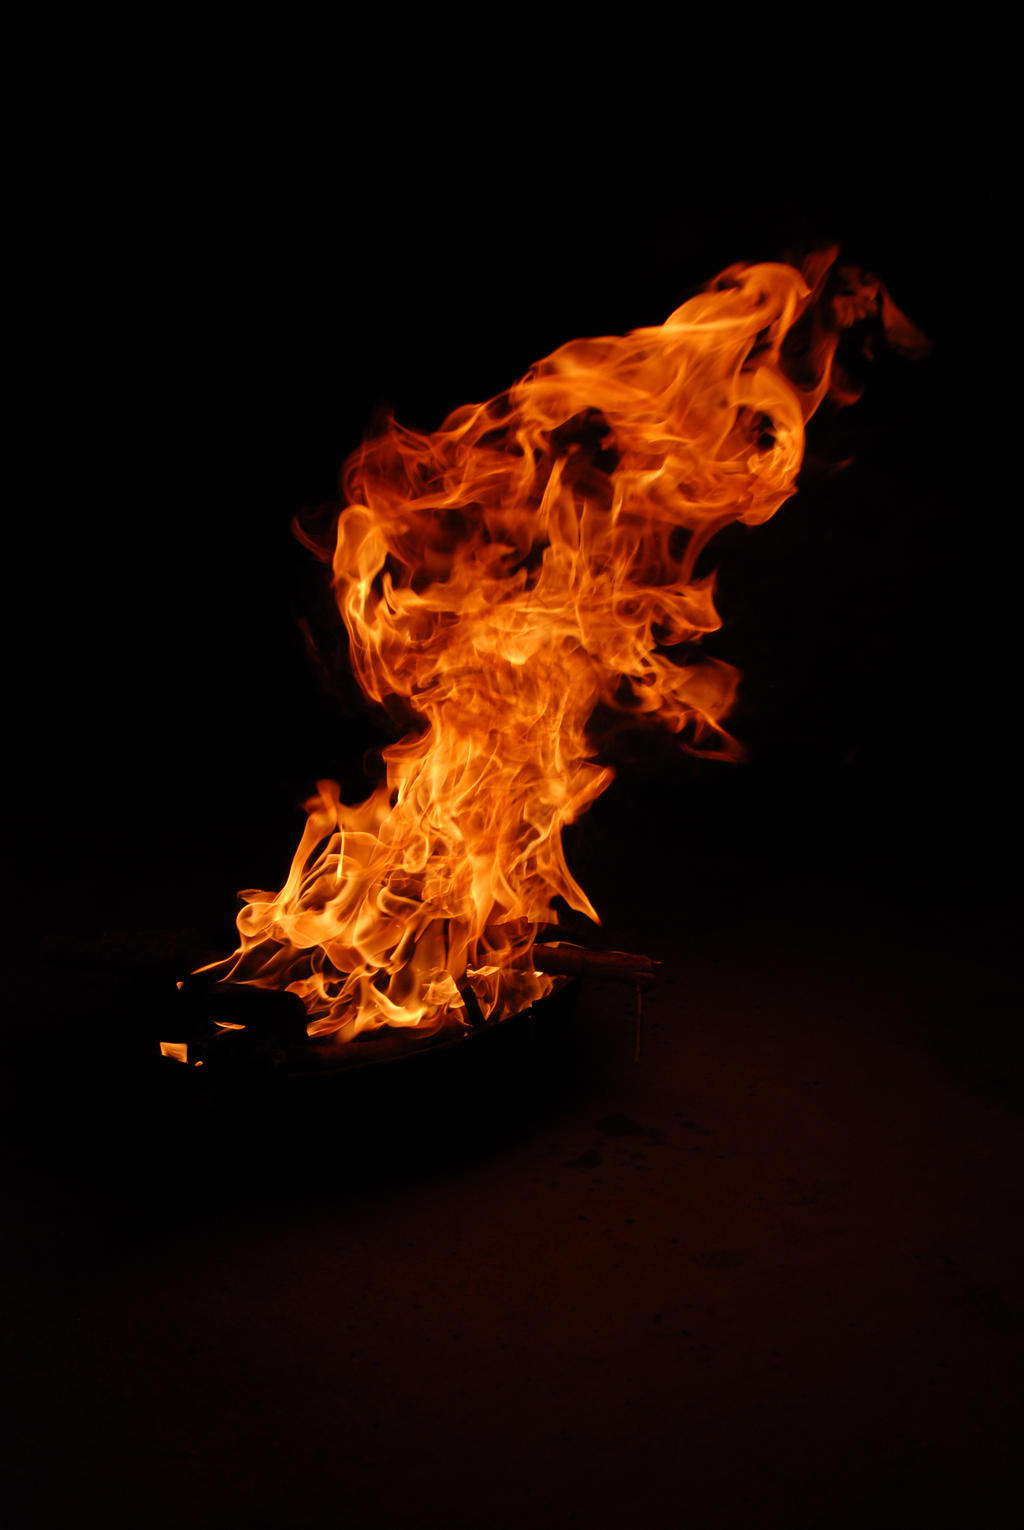 Pictures of Fire Effect Photoshop - #rock-cafe